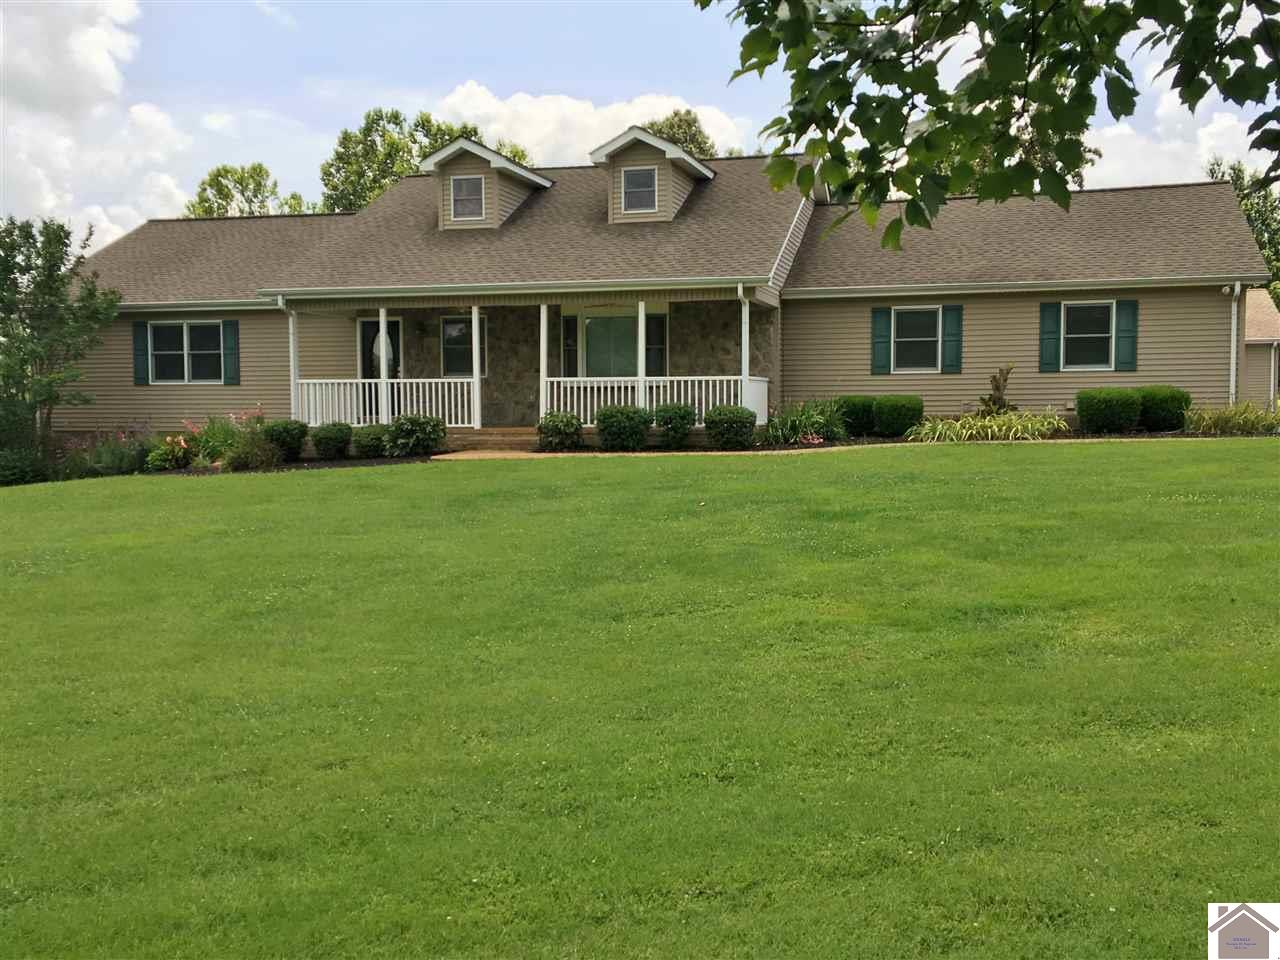 2215 Oak Level Rd, one of homes for sale in Benton